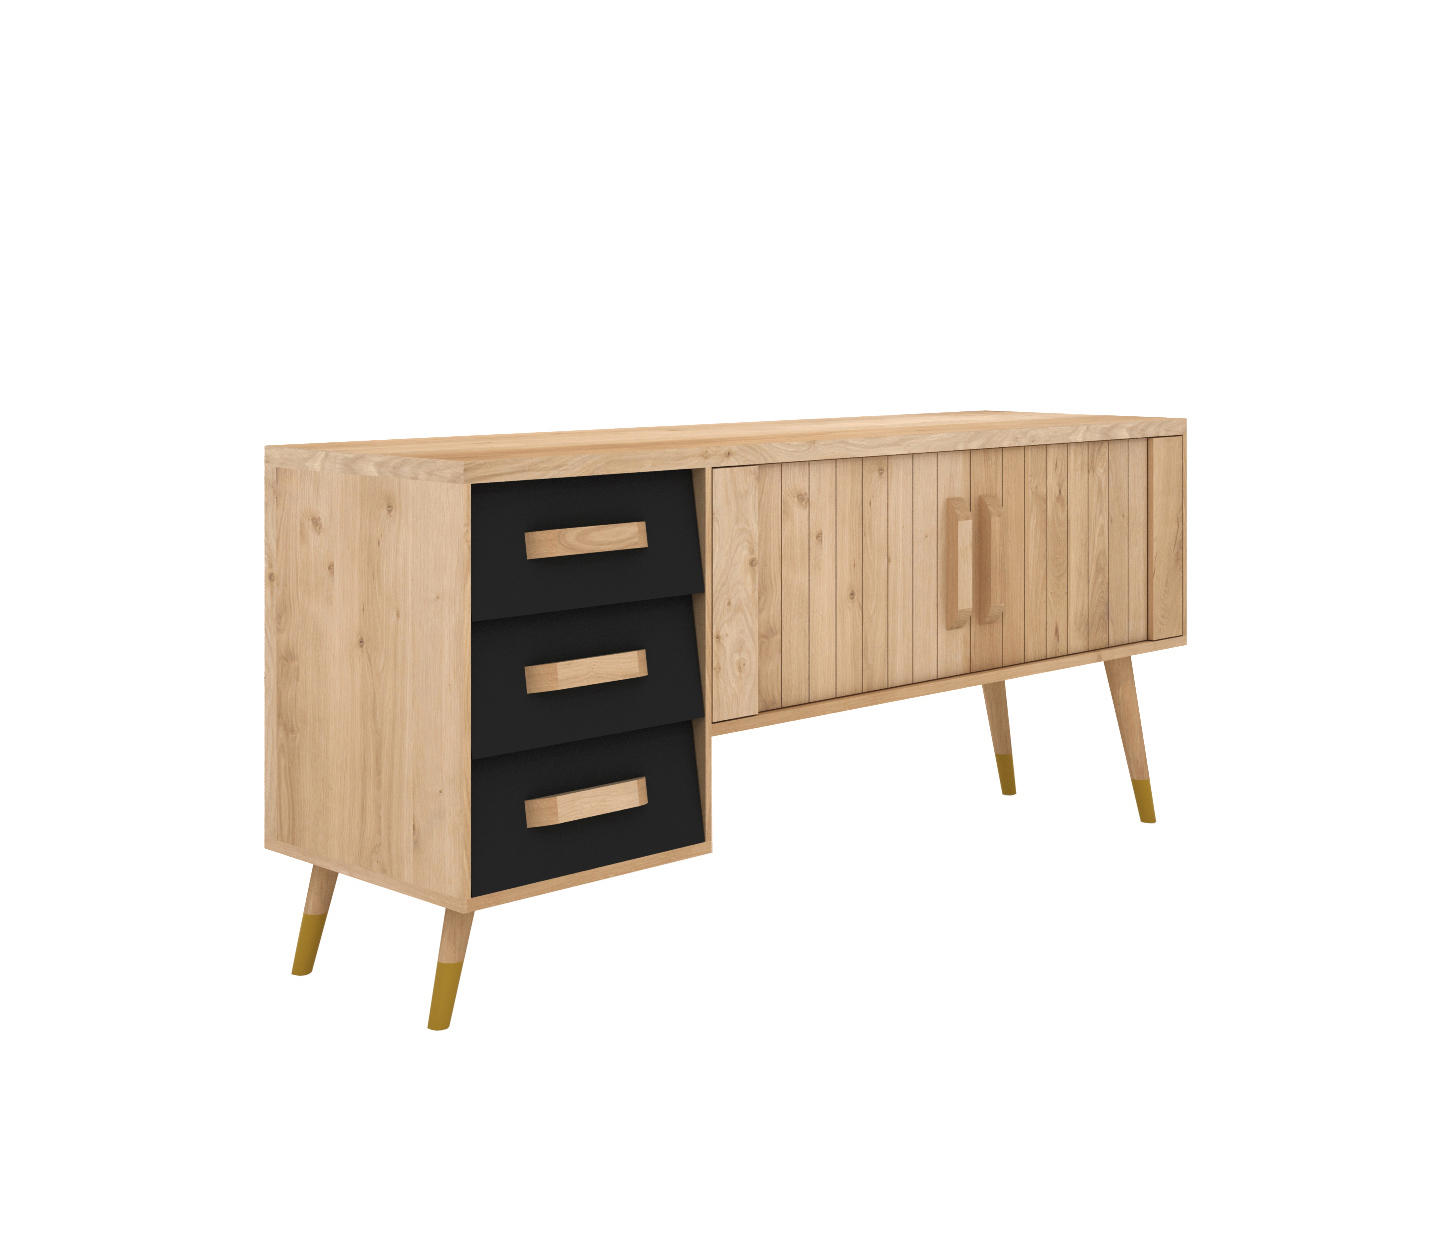 ORIGAMI TV CUPBOARD - Multimedia stands from Ethnicraft ... - photo#28